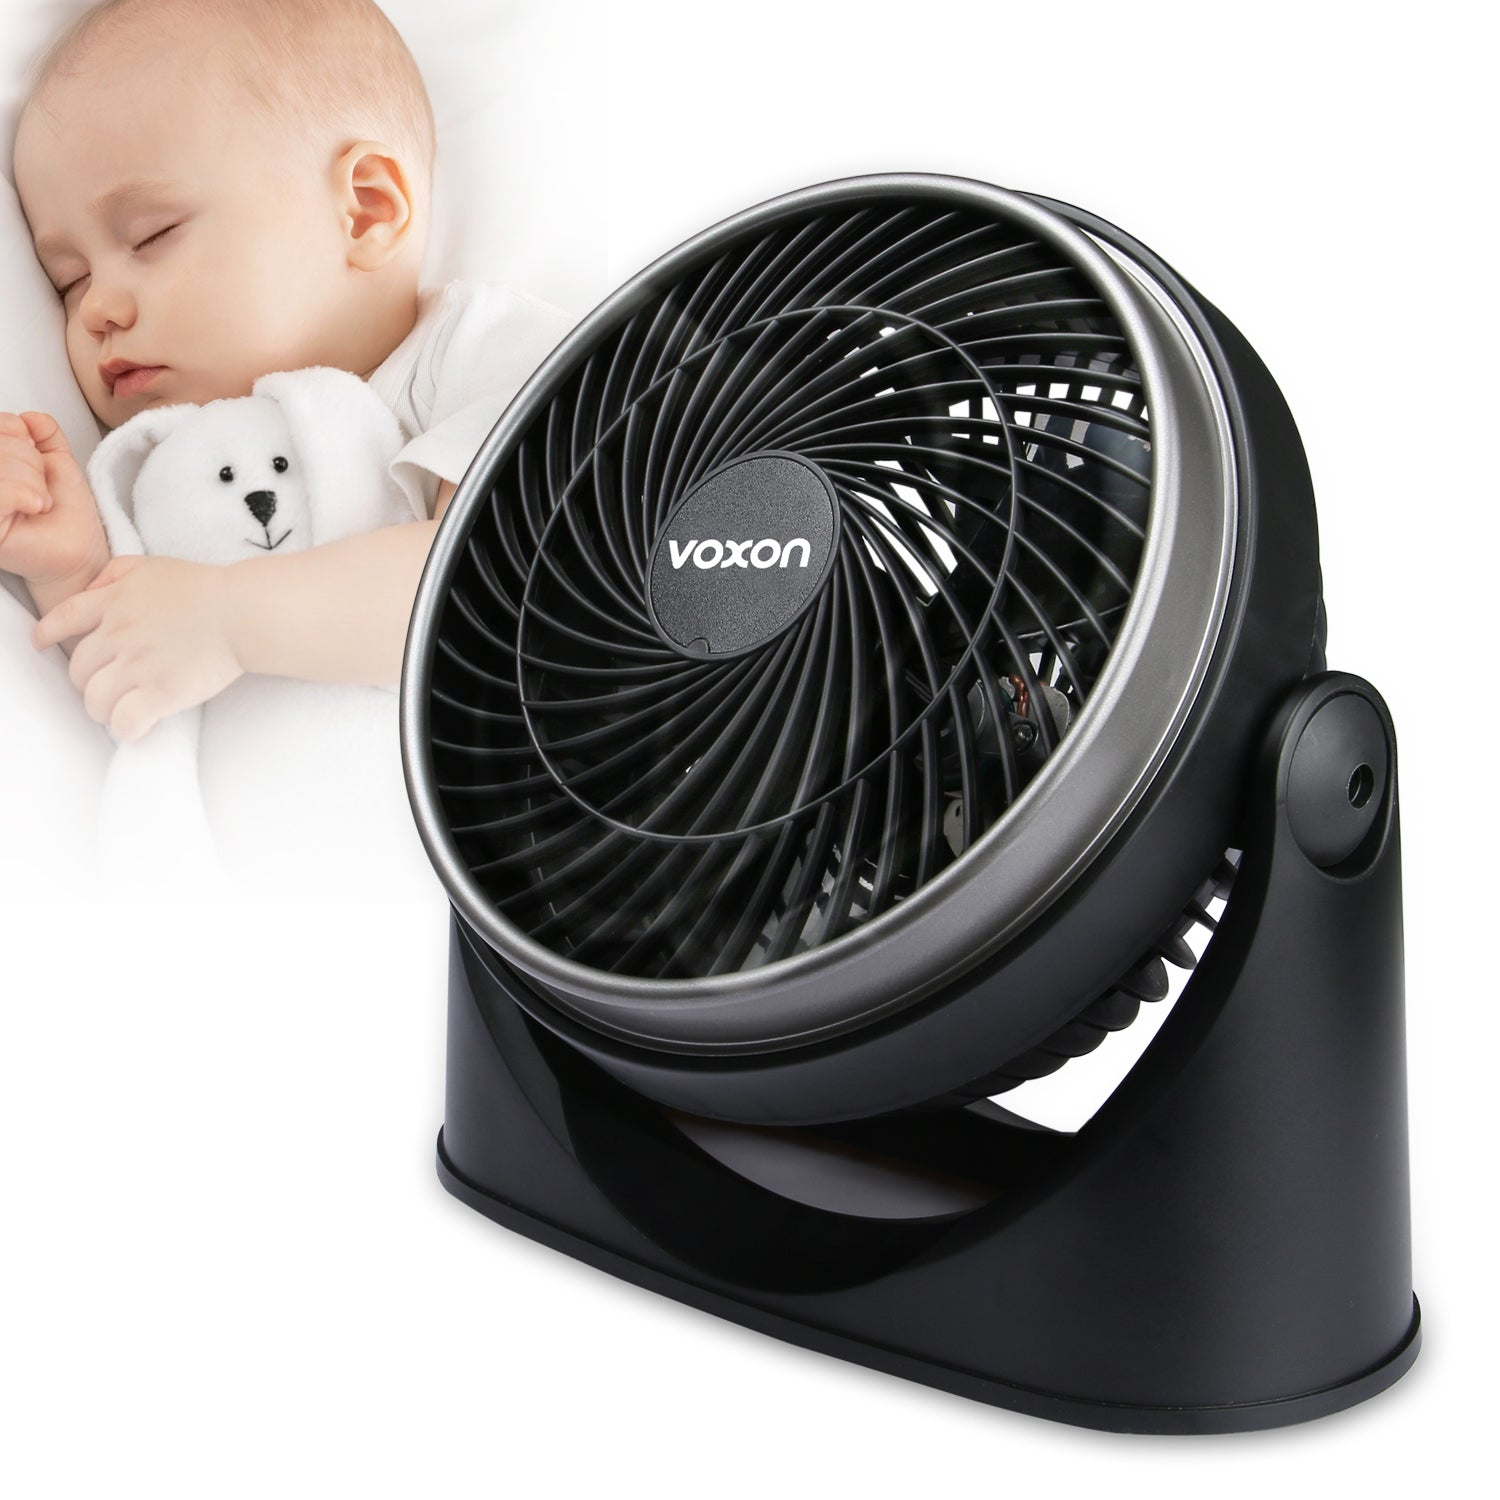 VOXON Turbo Force Air Circulator Table Fan Wall Mounted Desk Fans